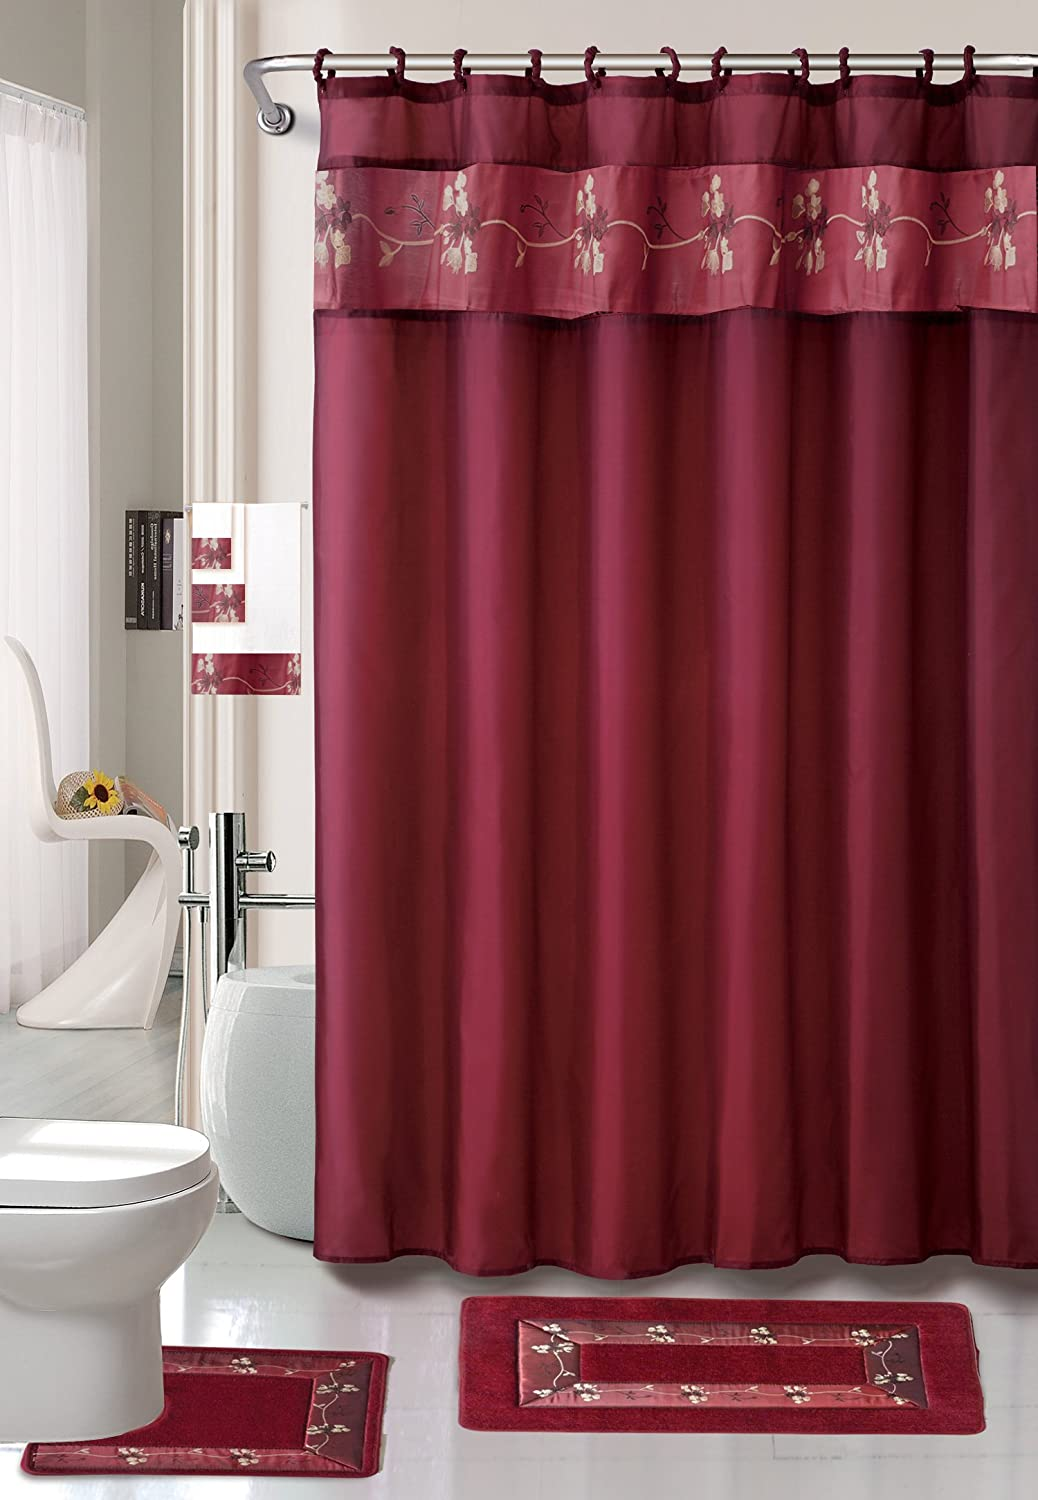 Amazon.com: Burgundy Flower 18 Piece Bathroom Set: 2 Rugs/mats, 1 Fabric  Shower Curtain, 12 Fabric Covered Rings, 3 Pc. Decorative Towel Set: Home U0026  Kitchen